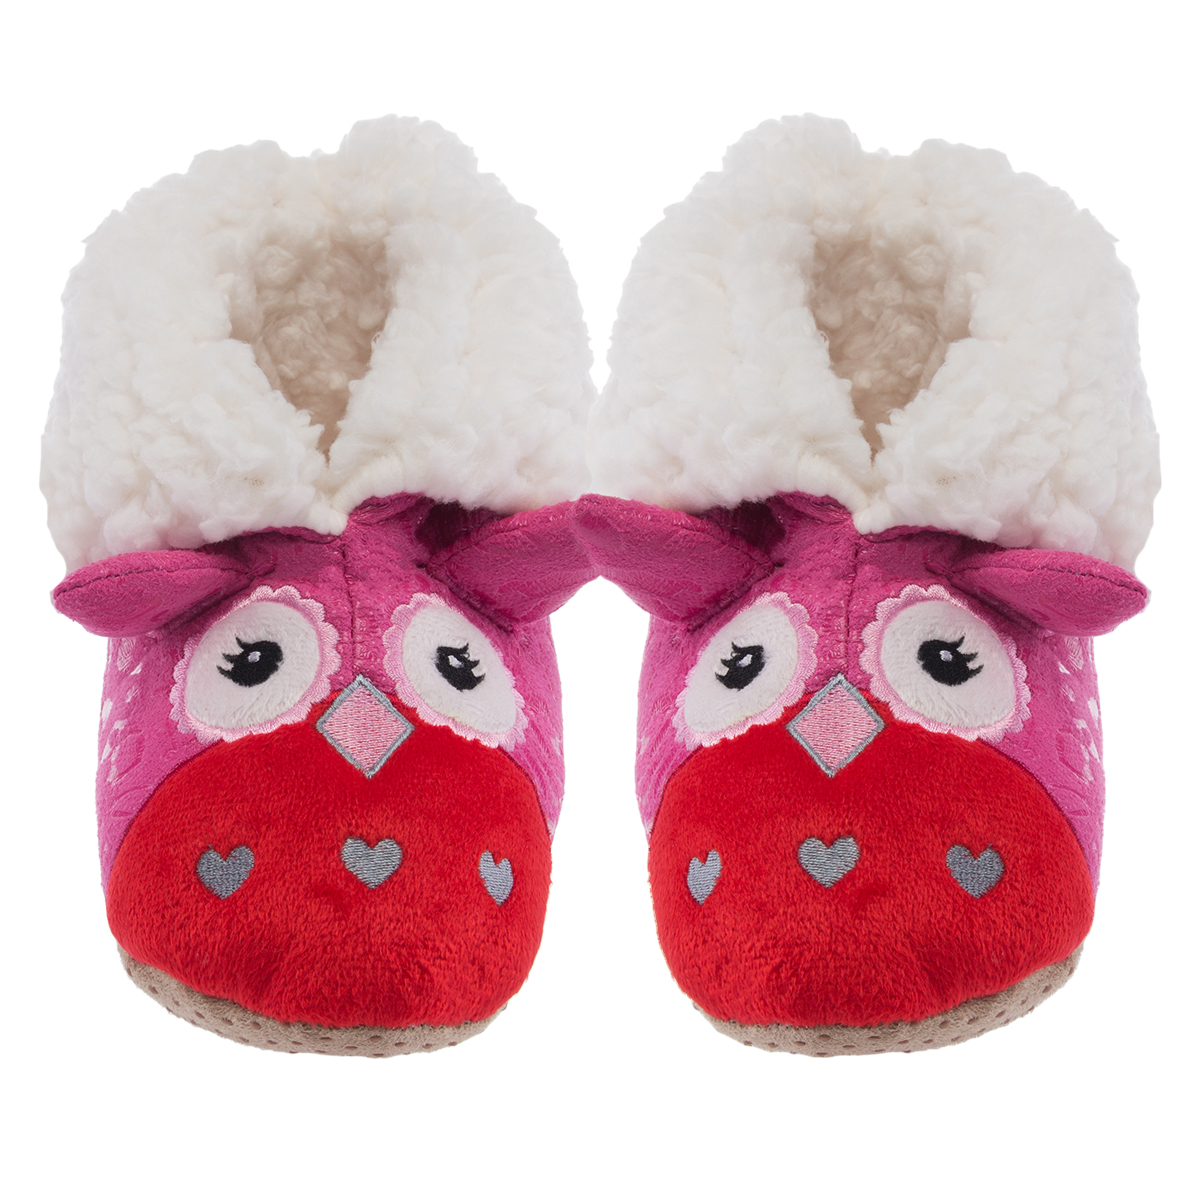 Yelete Plush Kids 3D Animal Slippers Cute Fuzzy Soft Sherpa Boots Toddlers Girls